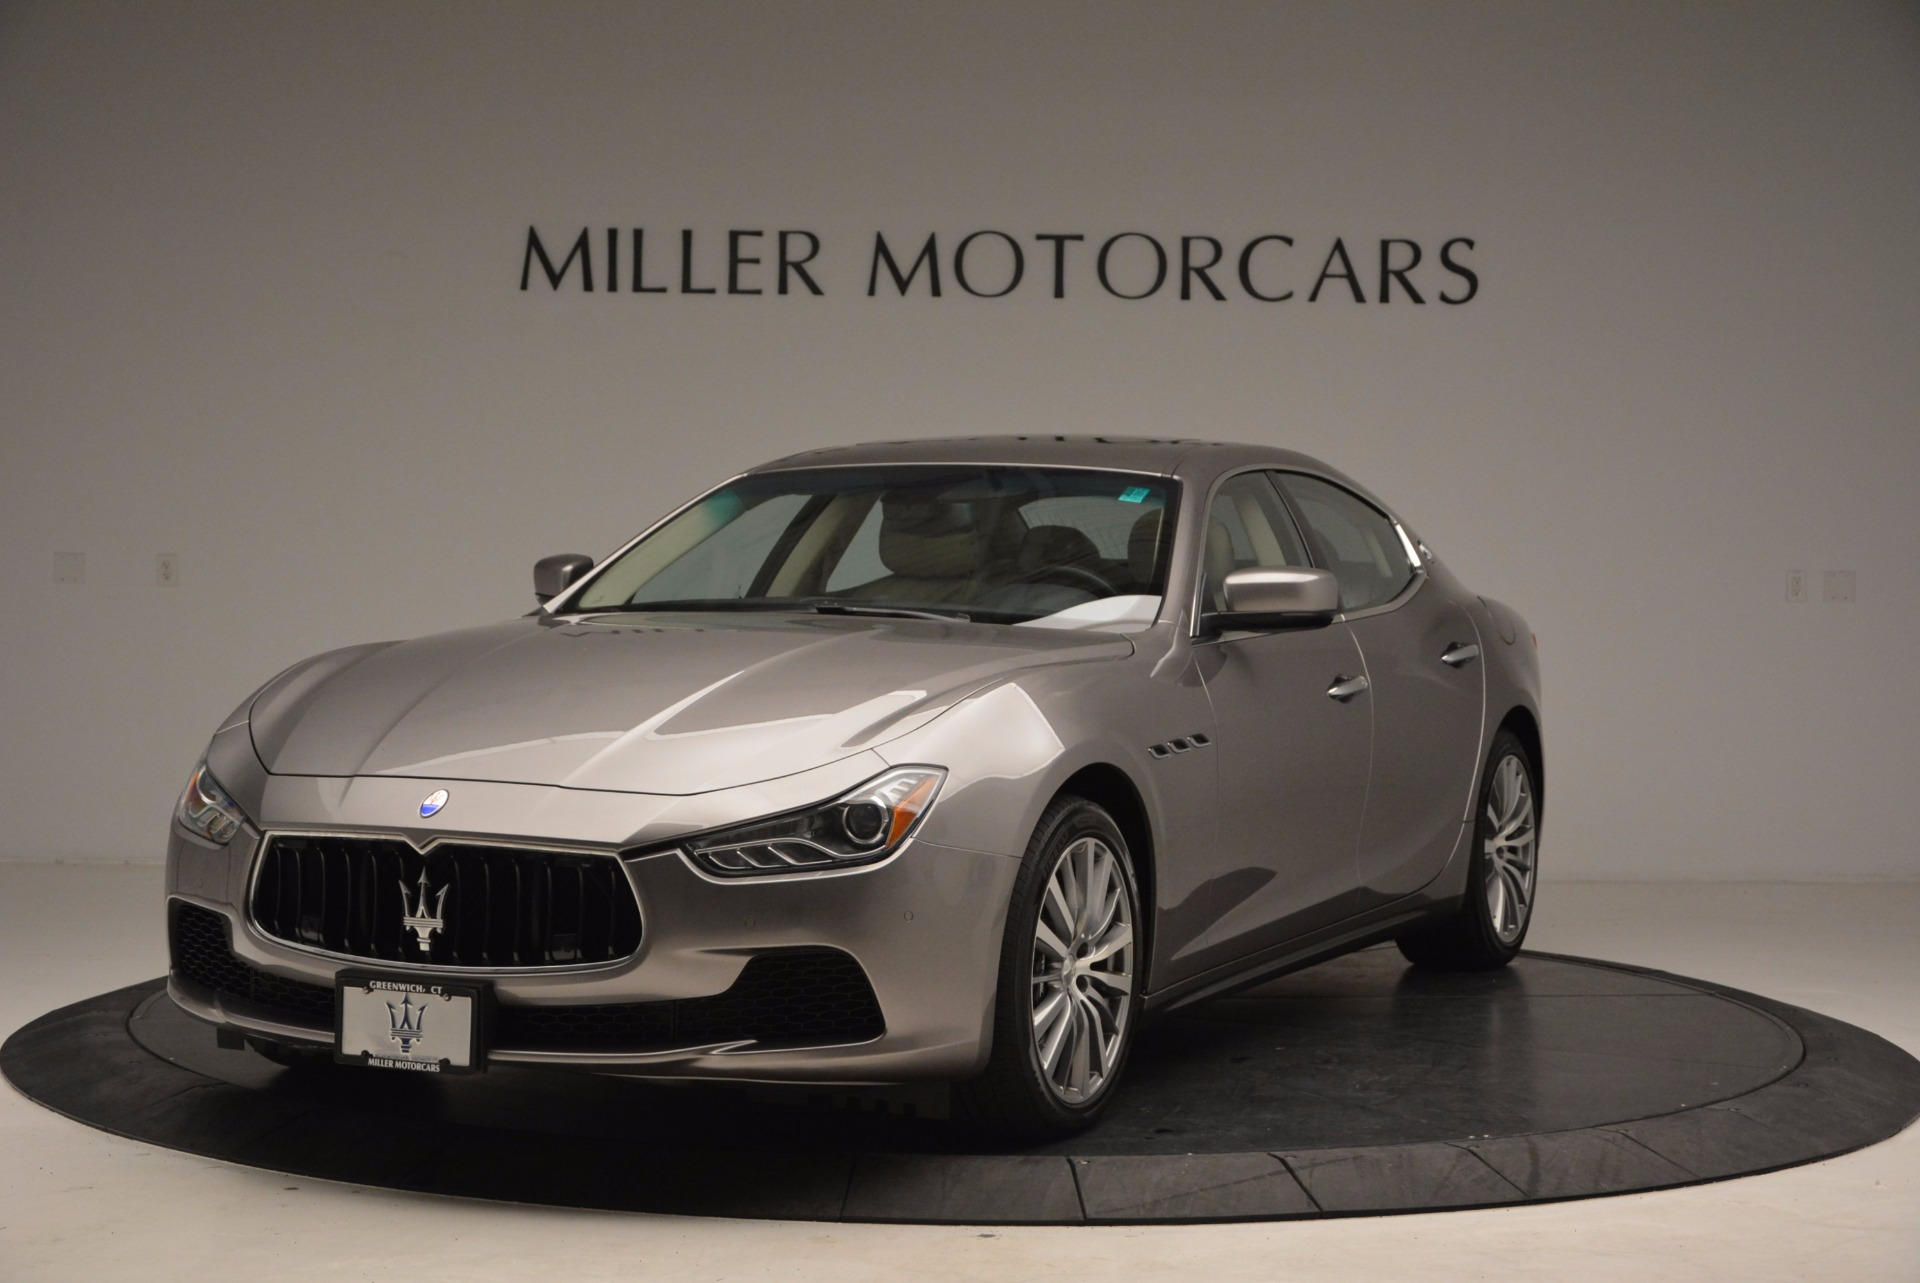 Used 2015 Maserati Ghibli S Q4 for sale Sold at Rolls-Royce Motor Cars Greenwich in Greenwich CT 06830 1